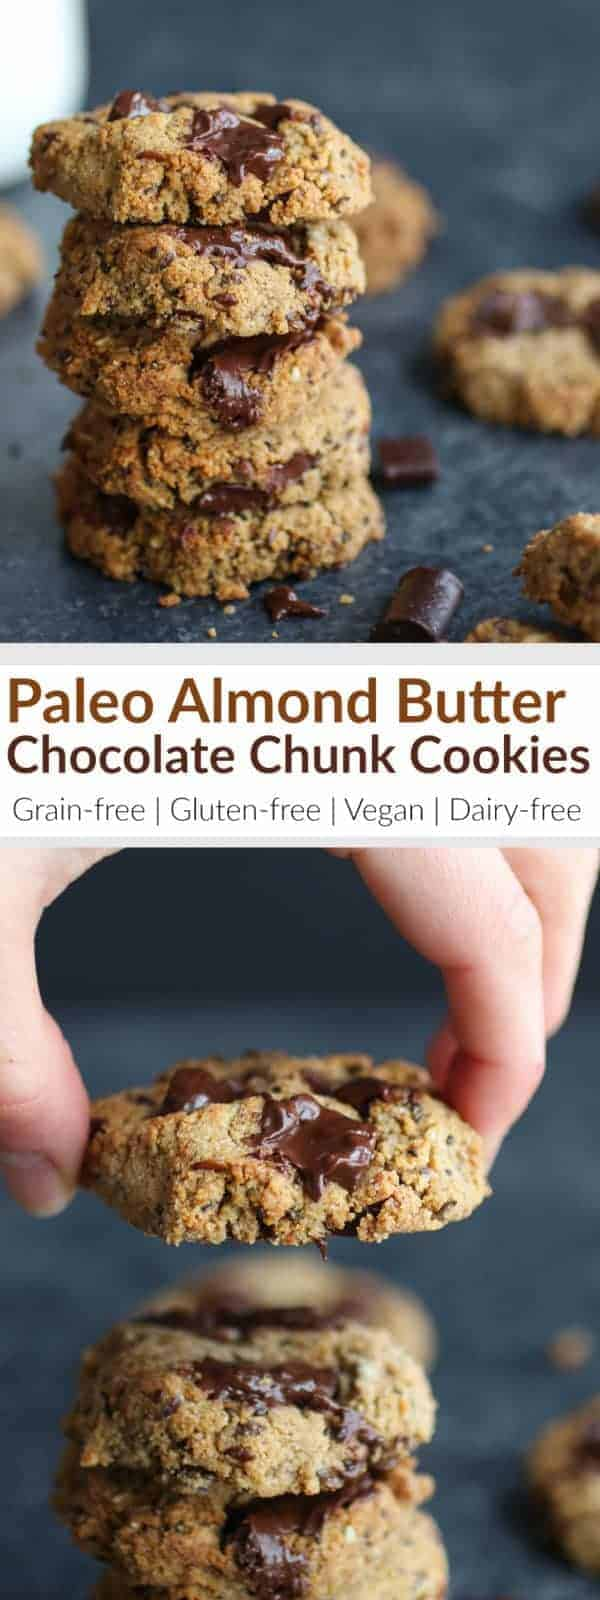 Paleo Almond Butter Chocolate Chunk Cookies | grain-free cookie recipes | gluten-free cookie recipes | vegan cookie recipes | dairy-free cookie recipes | paleo cookie recipes || The Real Food Dietitians #healthycookierecipe #paleocookies #glutenfreecookies